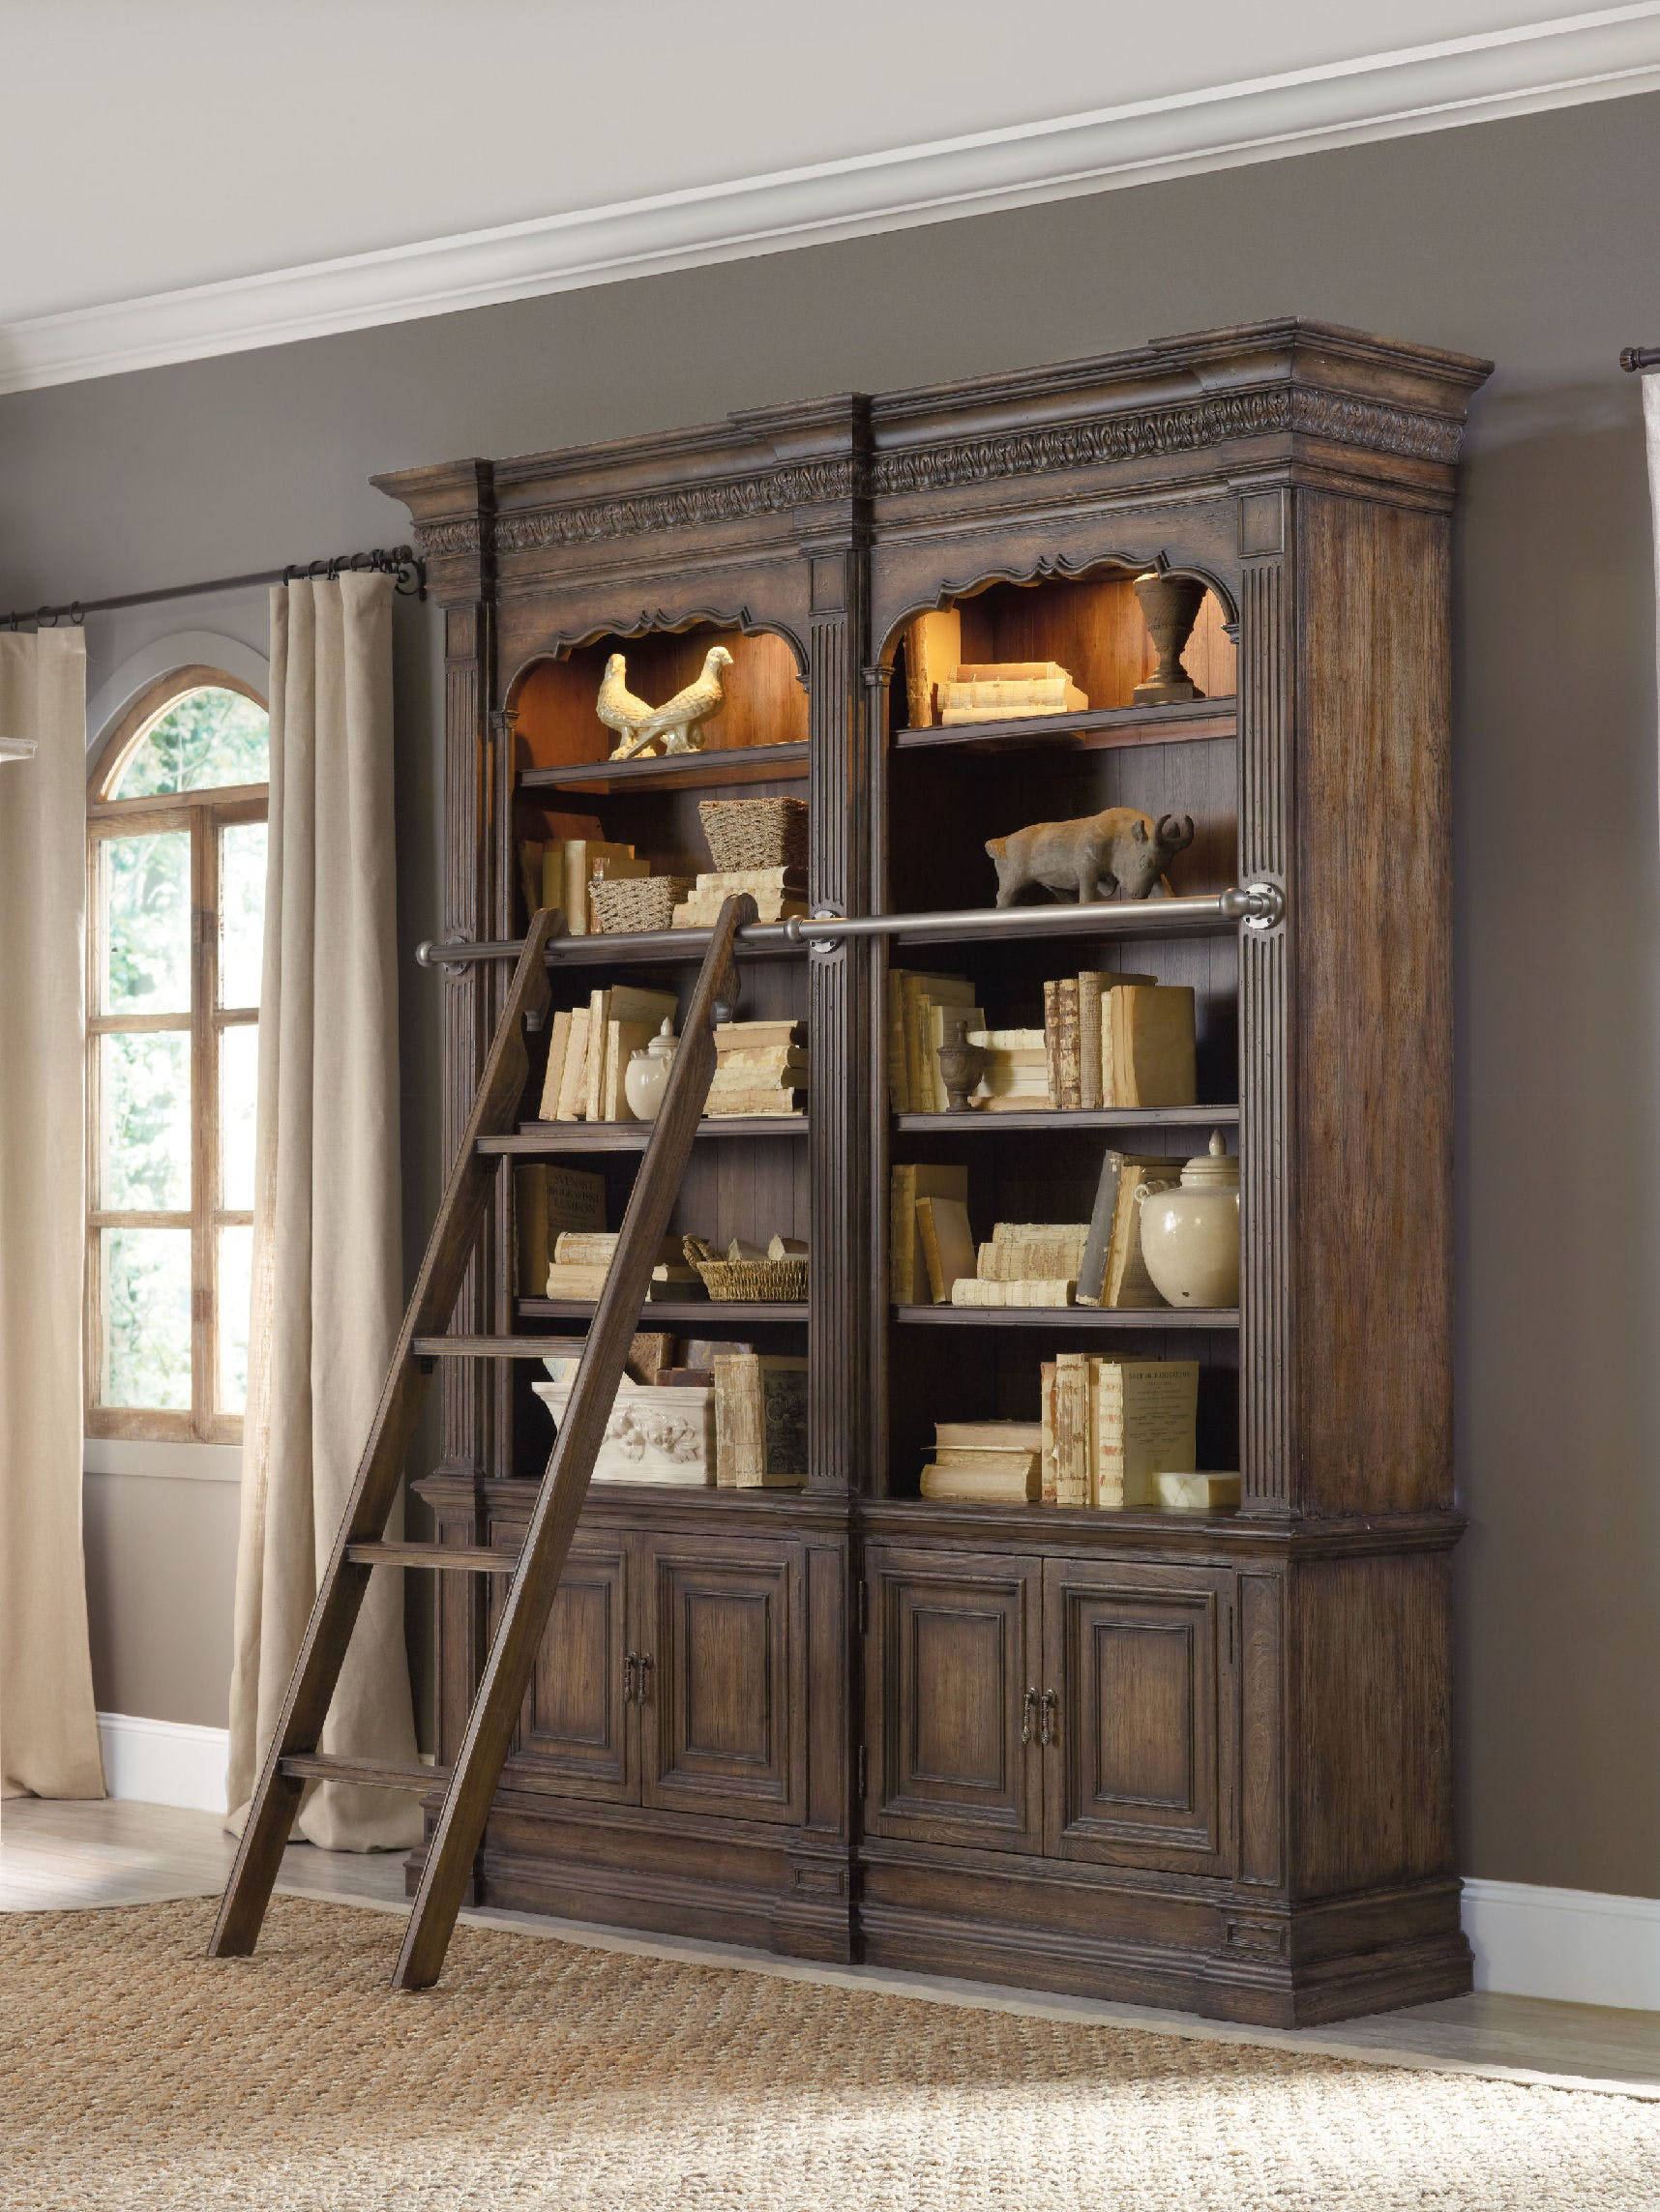 Rhapsody Double Bookcase With Ladder And Rail Sofas And